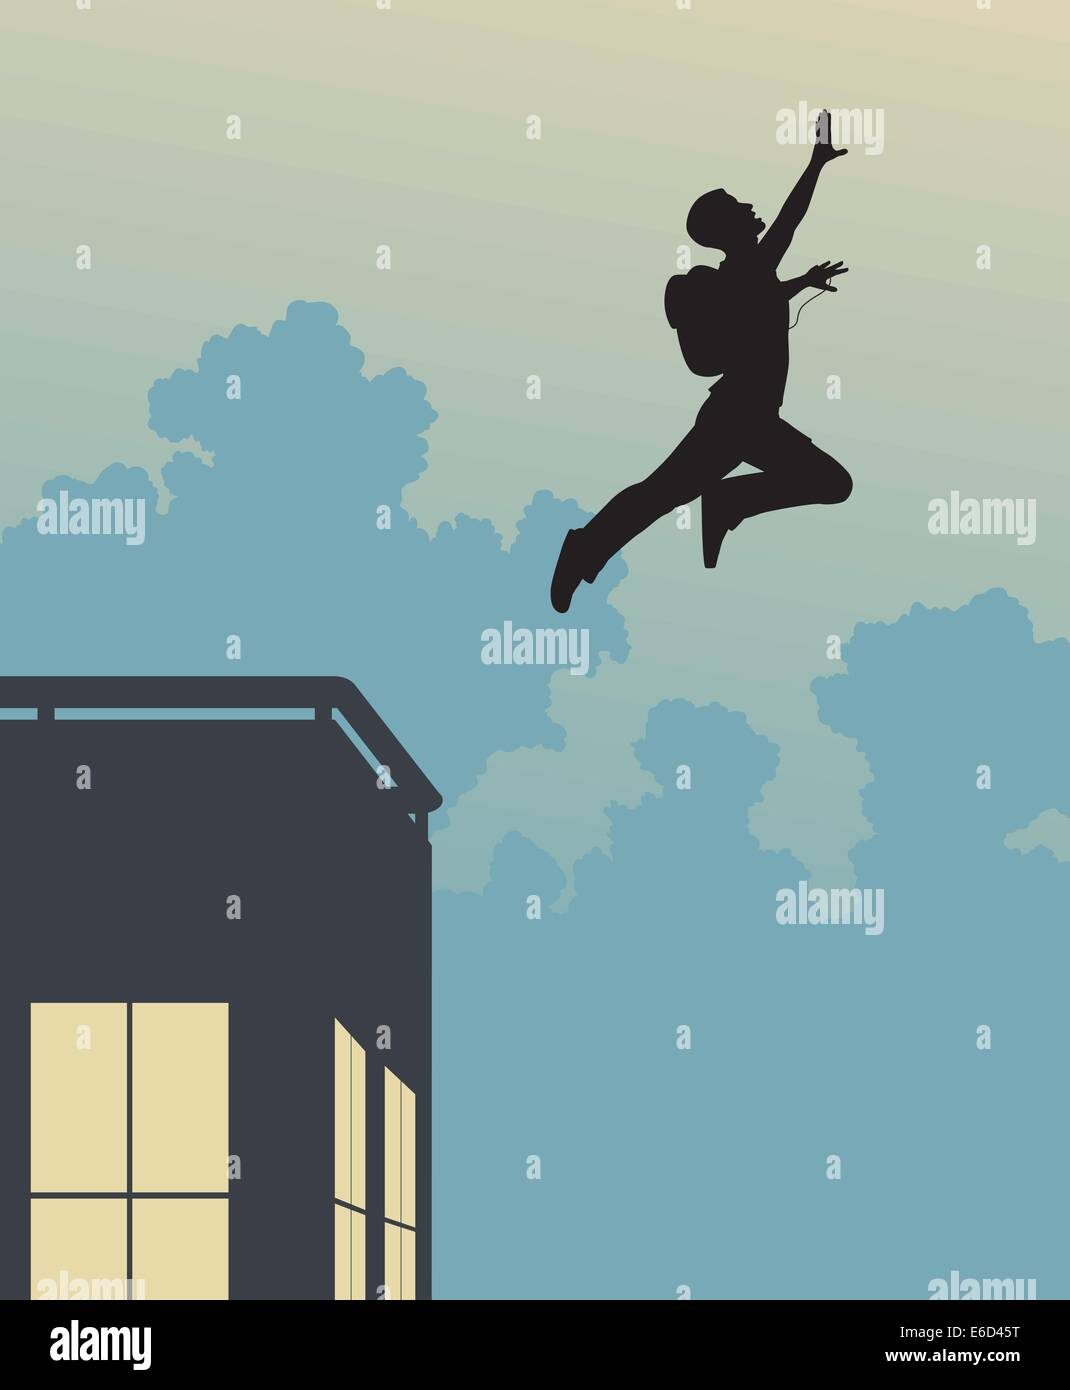 Editable vector silhouette of a base-jumper leaping off a building - Stock Image